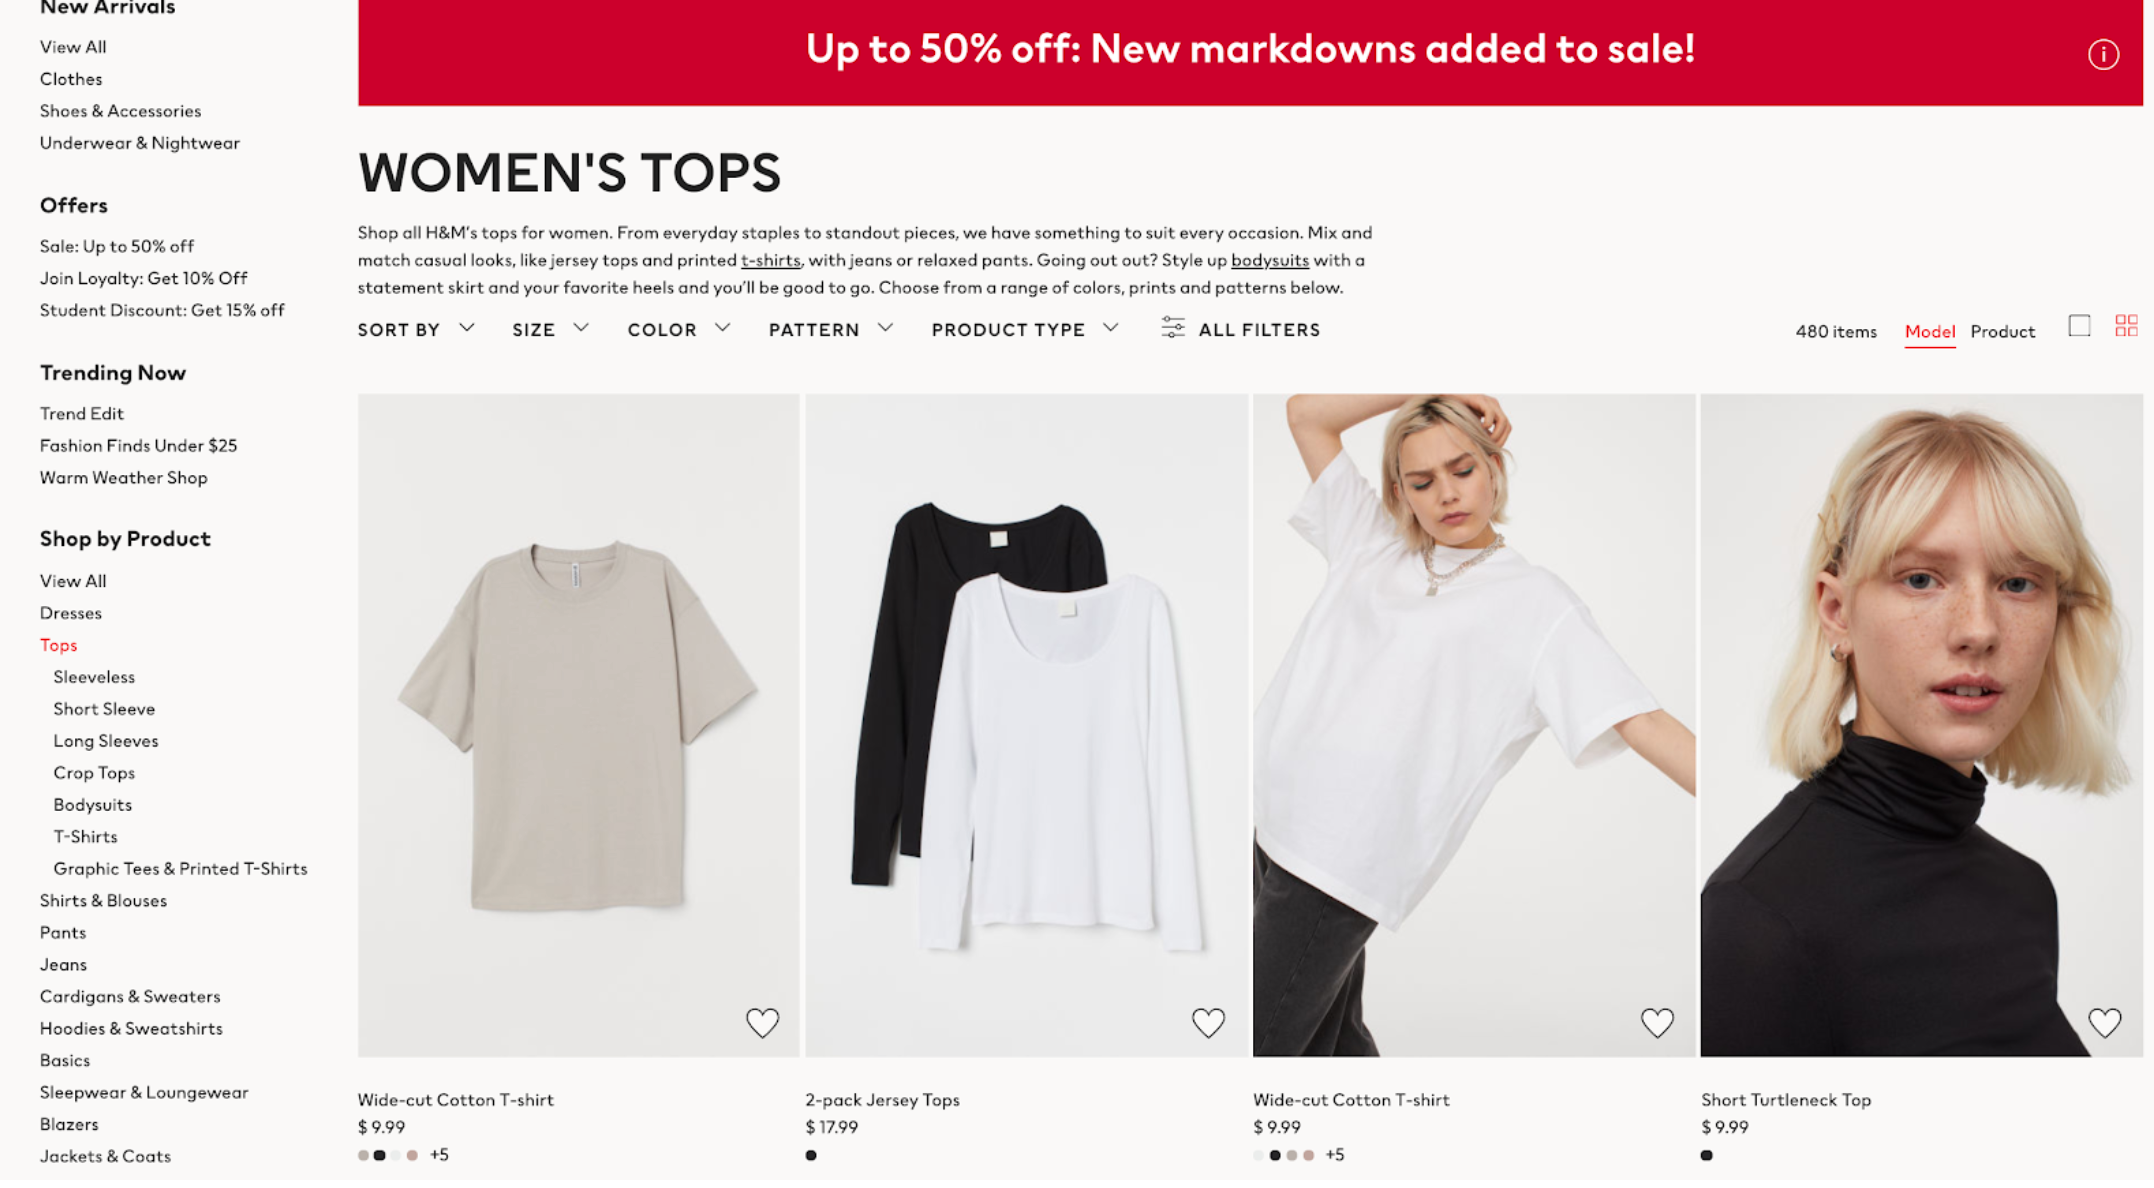 H&M Category Page for women's tops